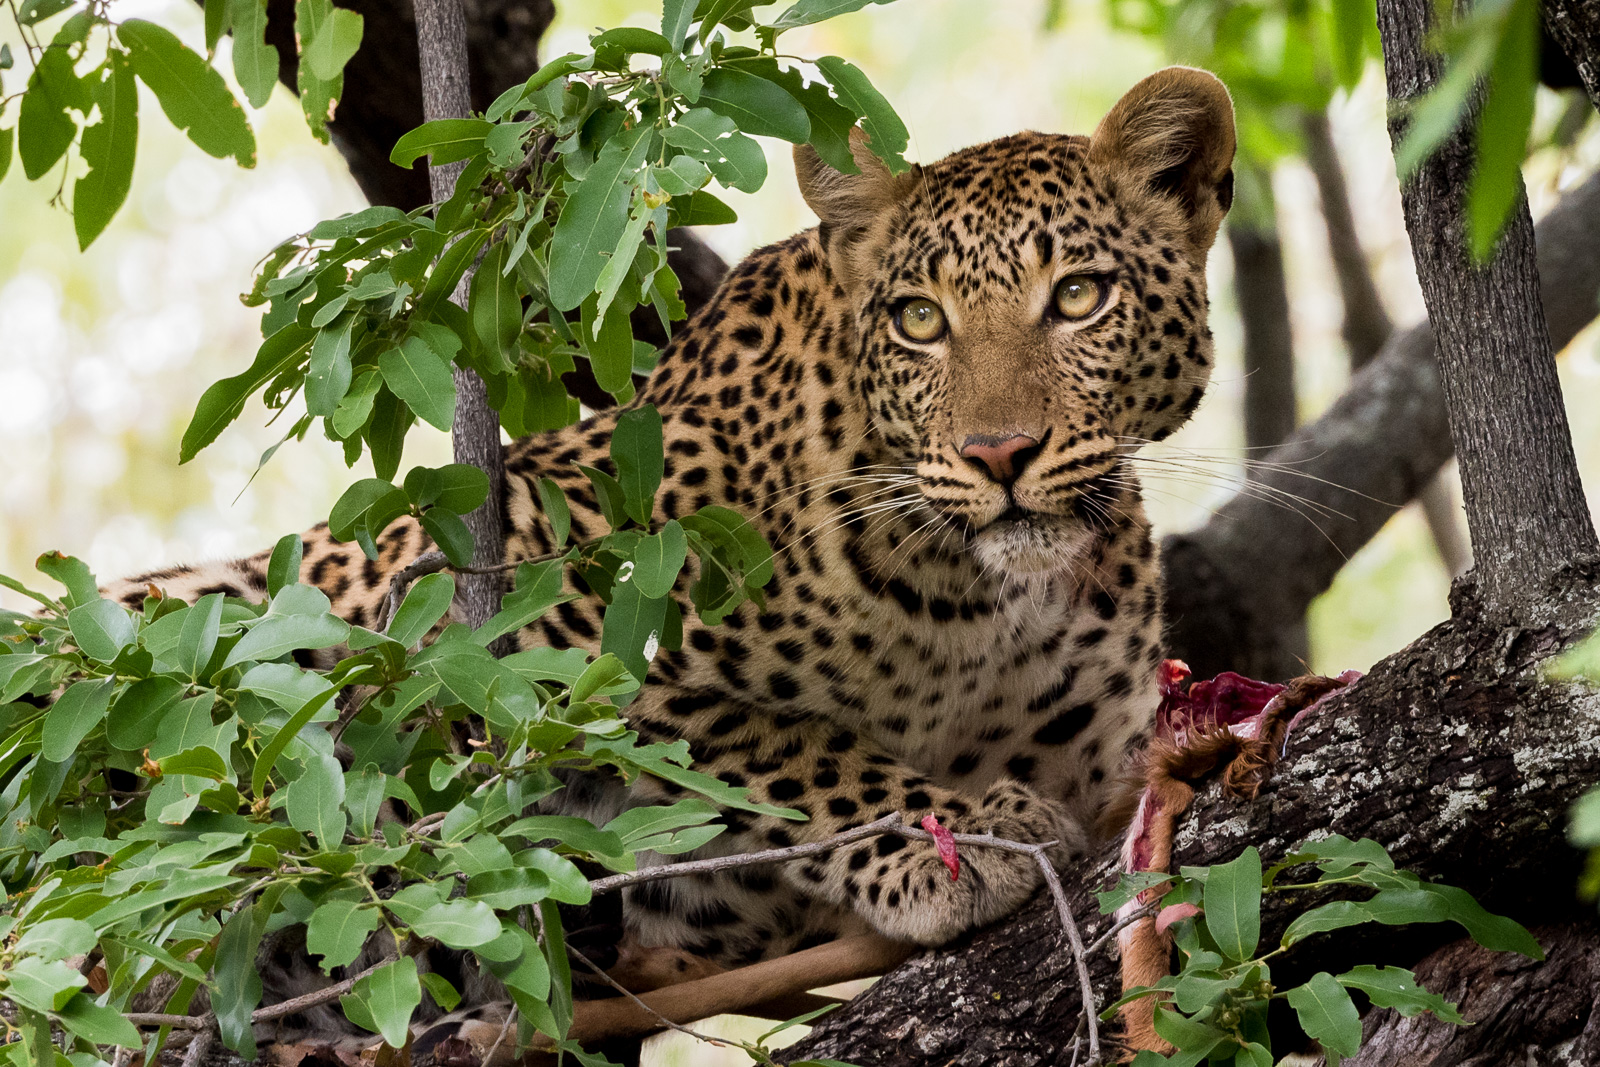 Another once in a lifetime sighting of a Leopard in the Okavango Delta, Botswana